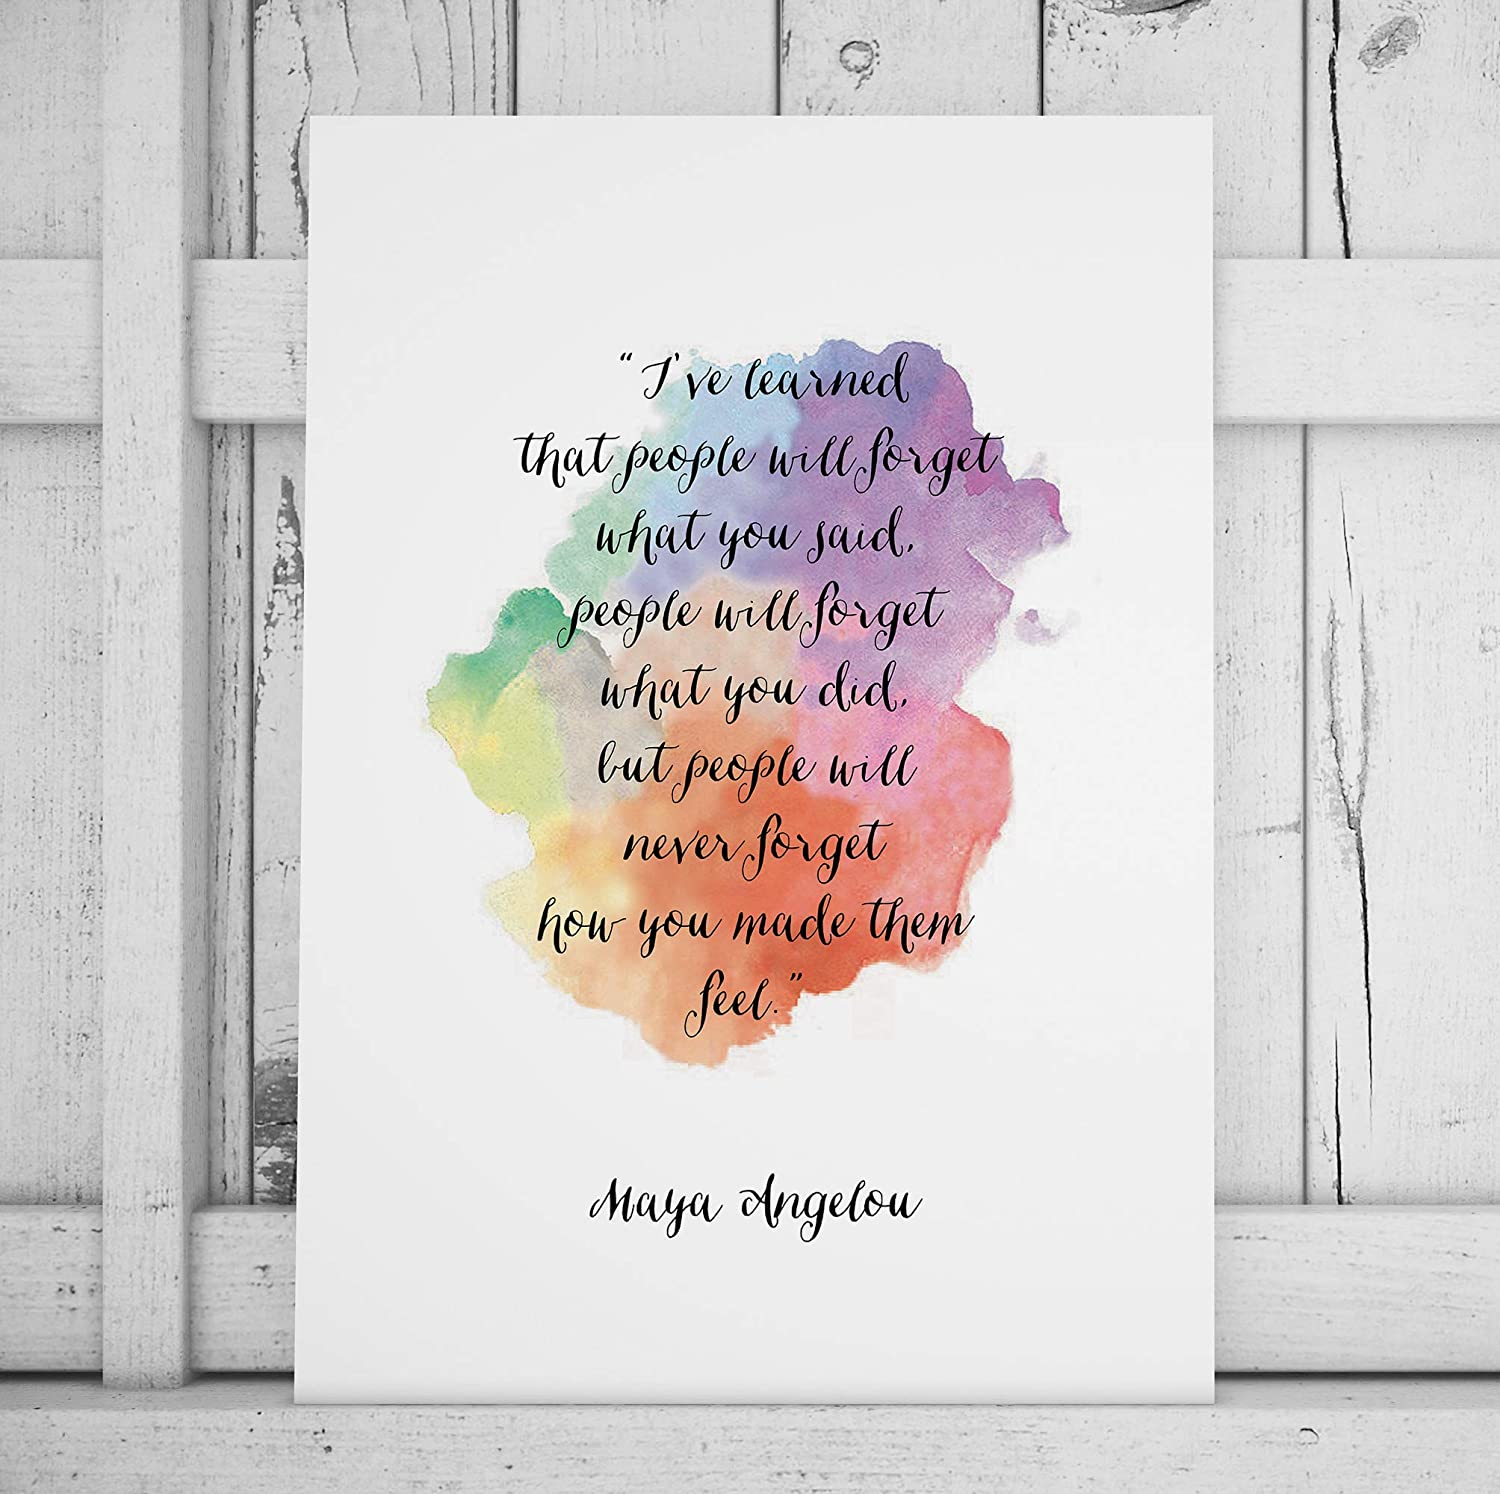 Maya Angelou Quote Print I've Learned That People Will Forget Motivational Poster Inspirational Print Watercolor Paint Handwritten